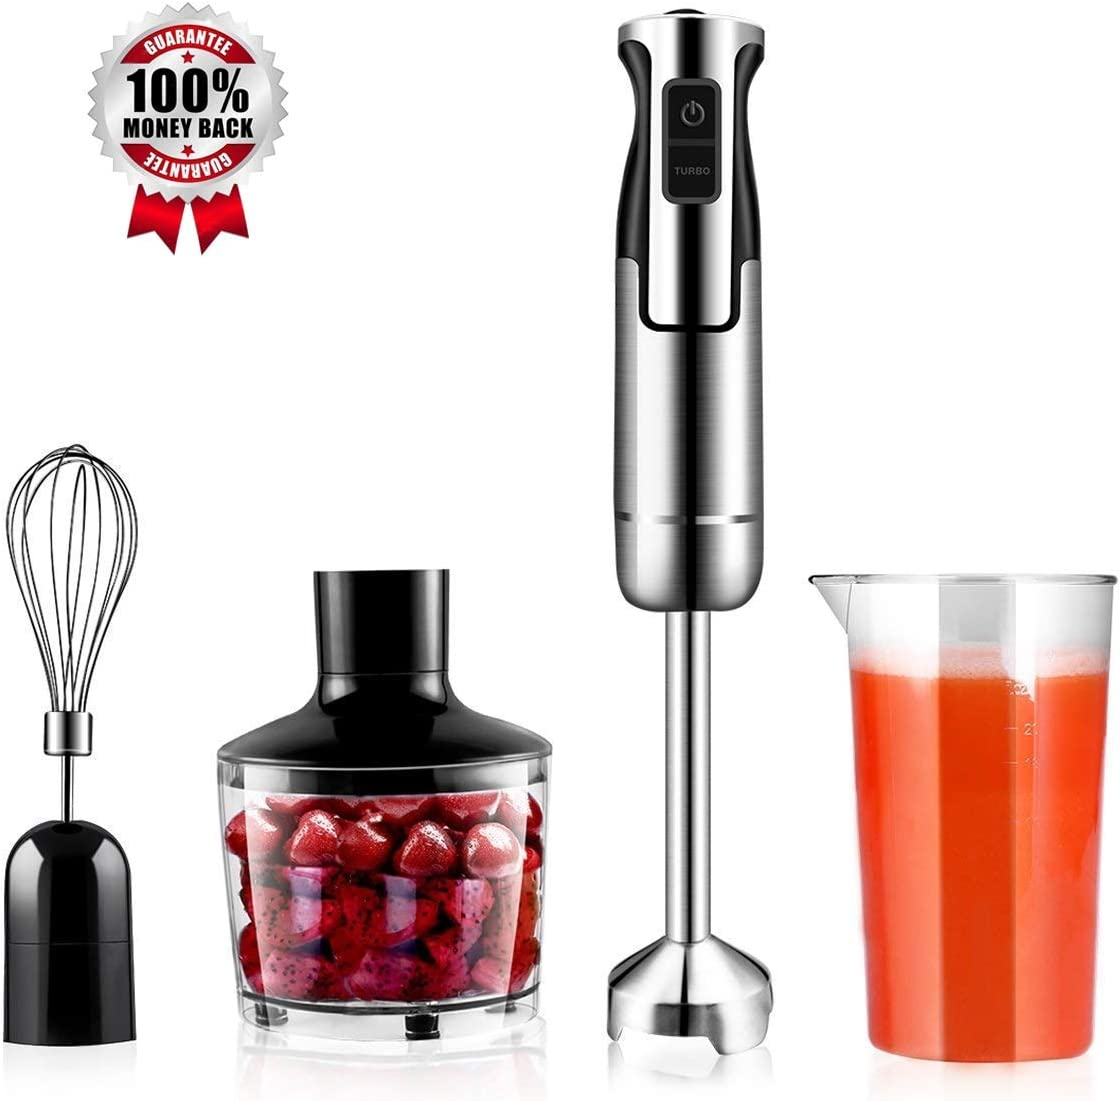 Hand Immersion Blender 500W 8 Speed Control, 4-In-1 Handheld Blender Powerful Smart Include Food Chopper, Egg Whisk, BPA Free Beaker, For Soups, Smoothie, Baby Food